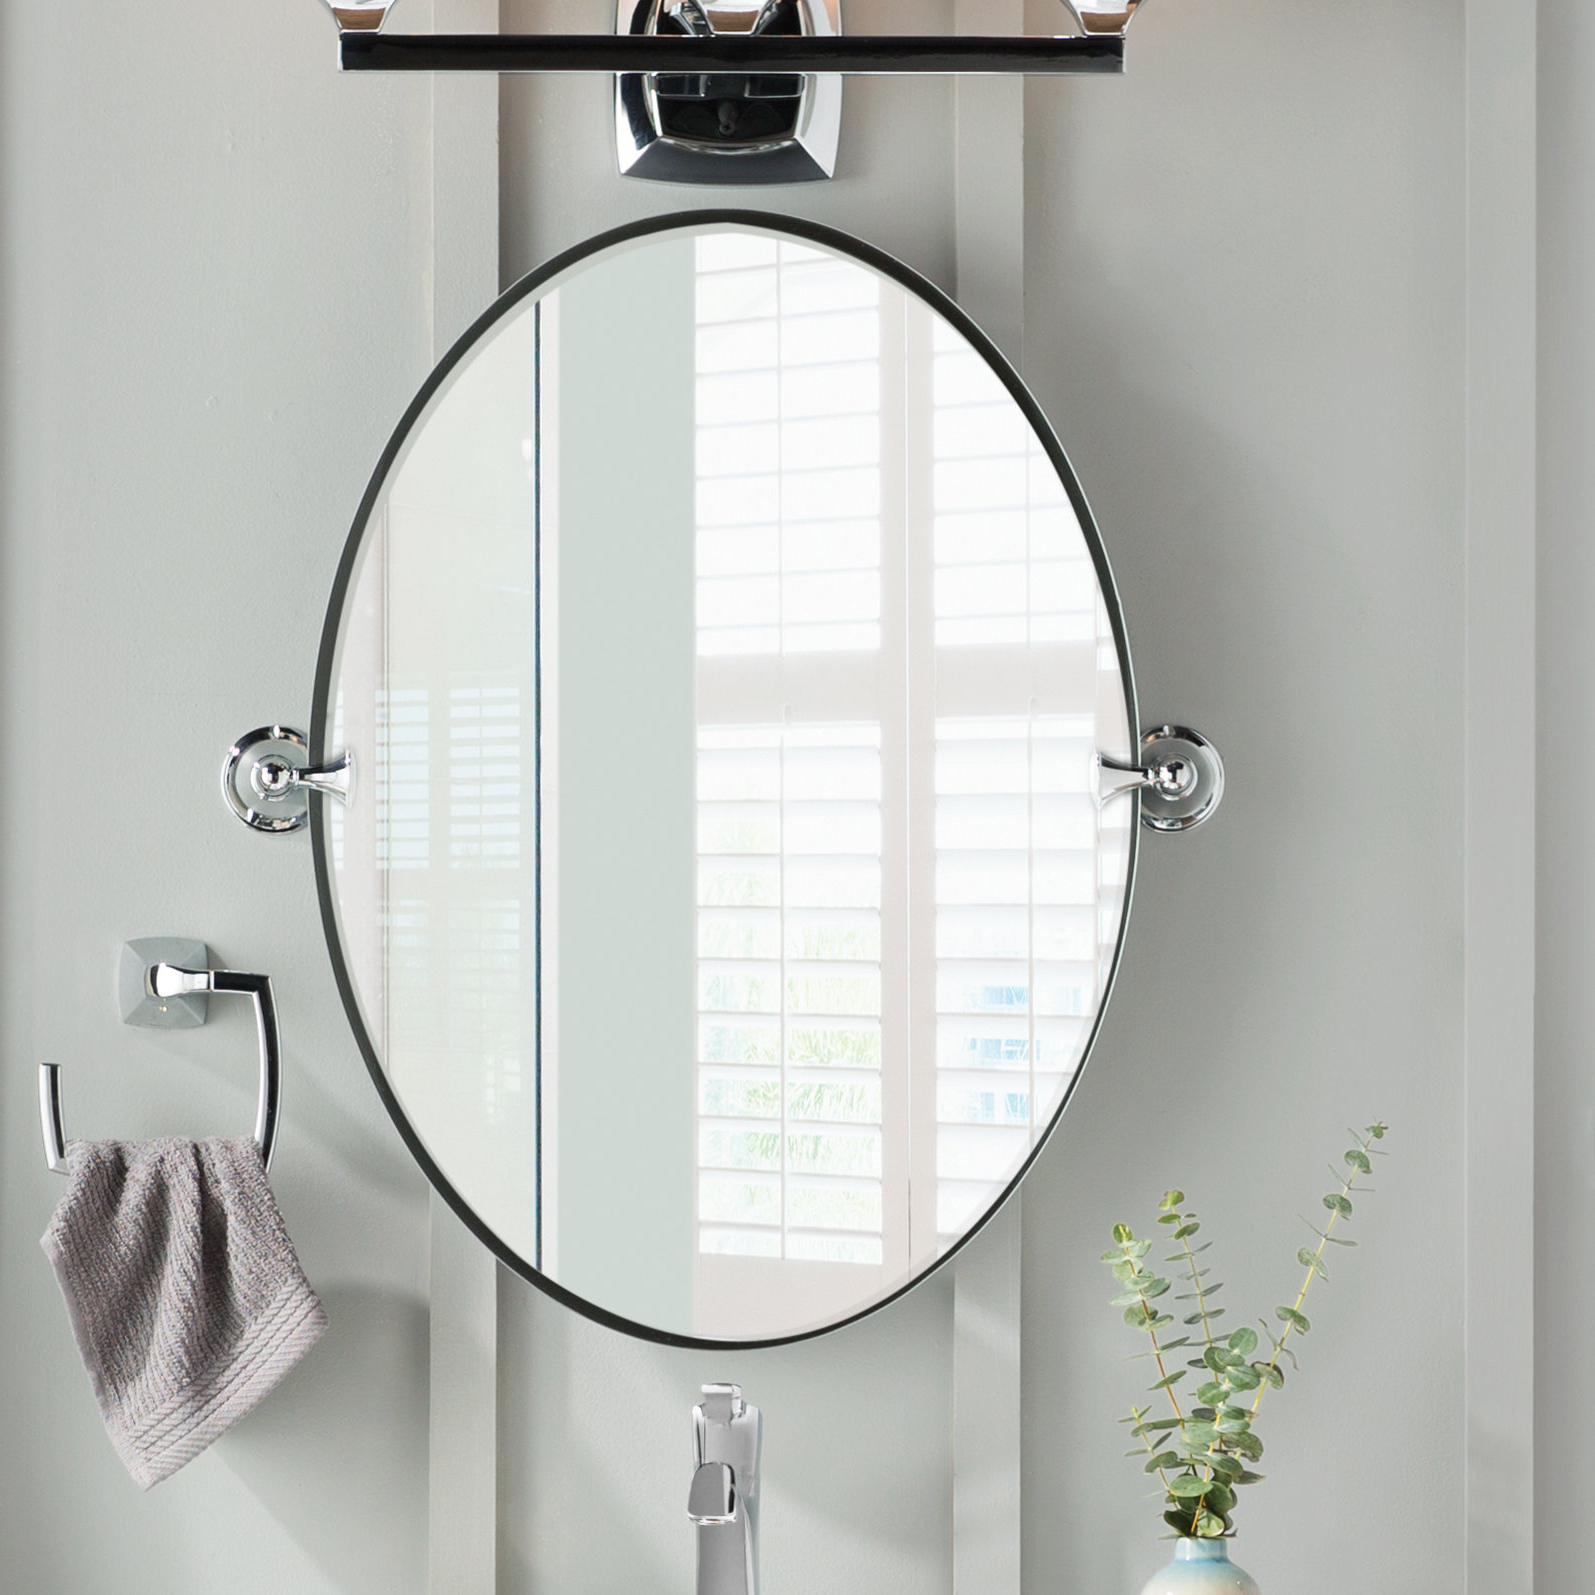 Wayfair Regarding Unframed Wall Mirrors (View 17 of 20)